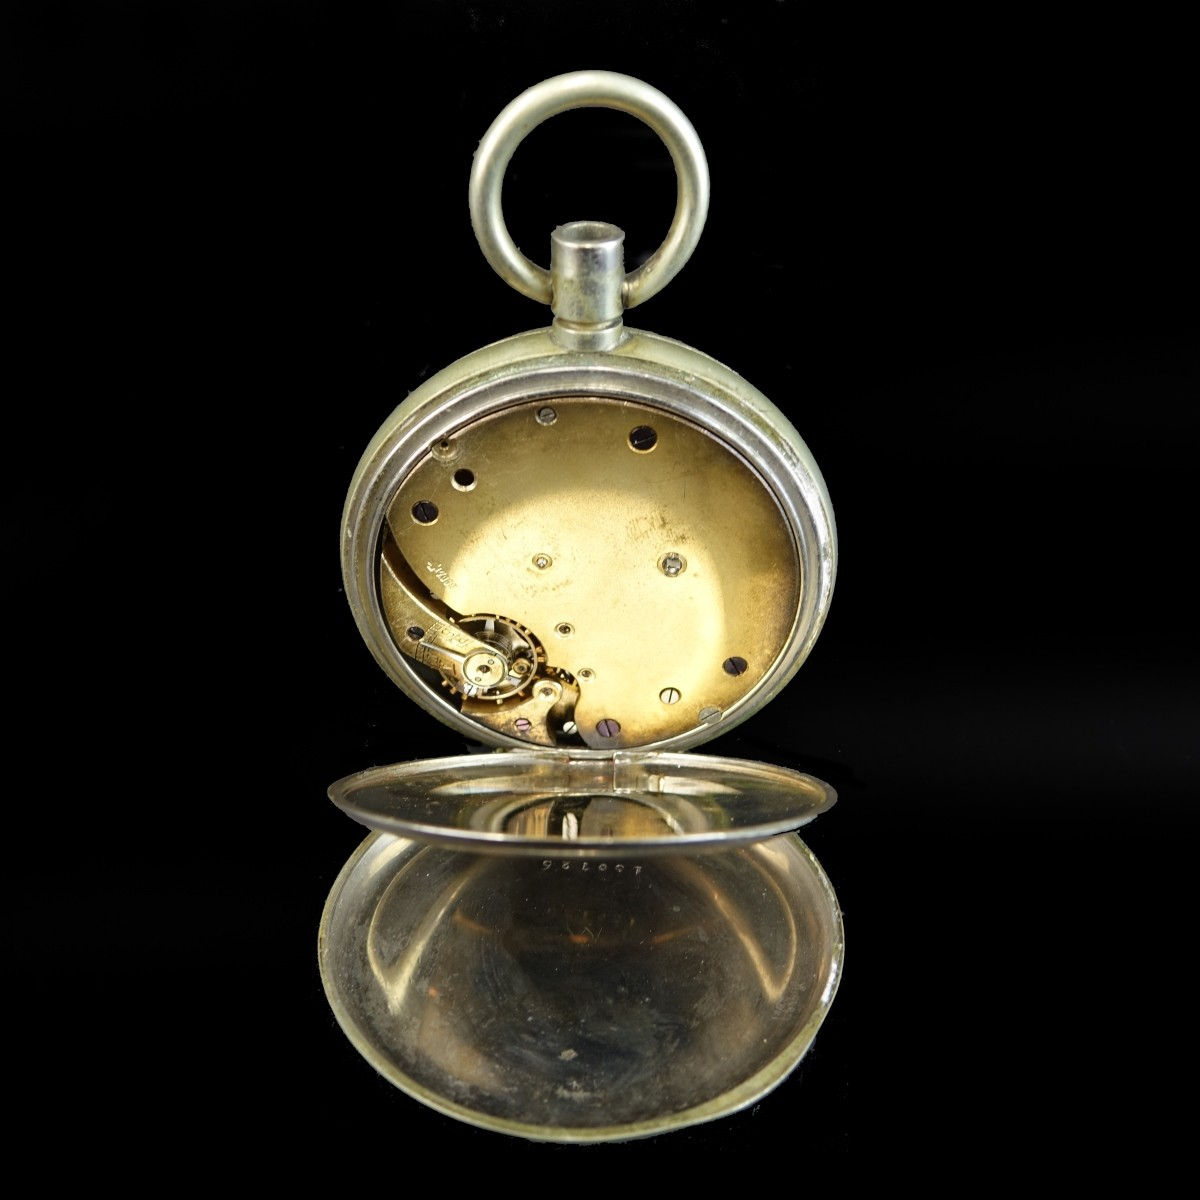 J.C. Vickery Pocket Watch